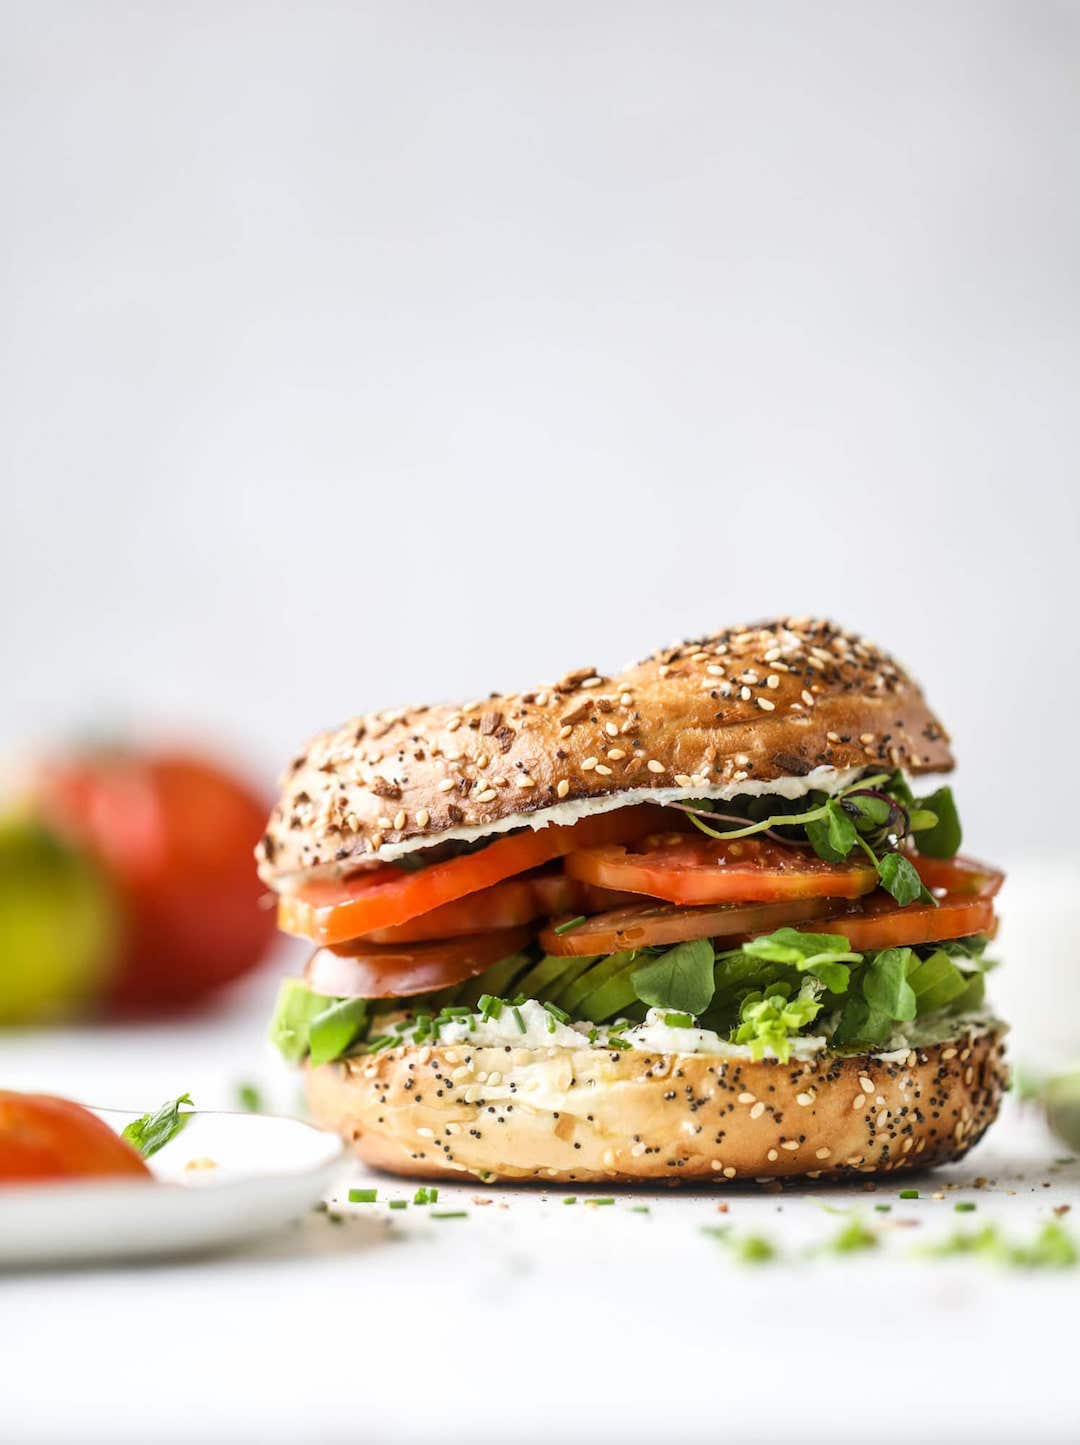 11 Yummy Plant Based Sandwiches - Bagelwhiches by How Sweet Eats